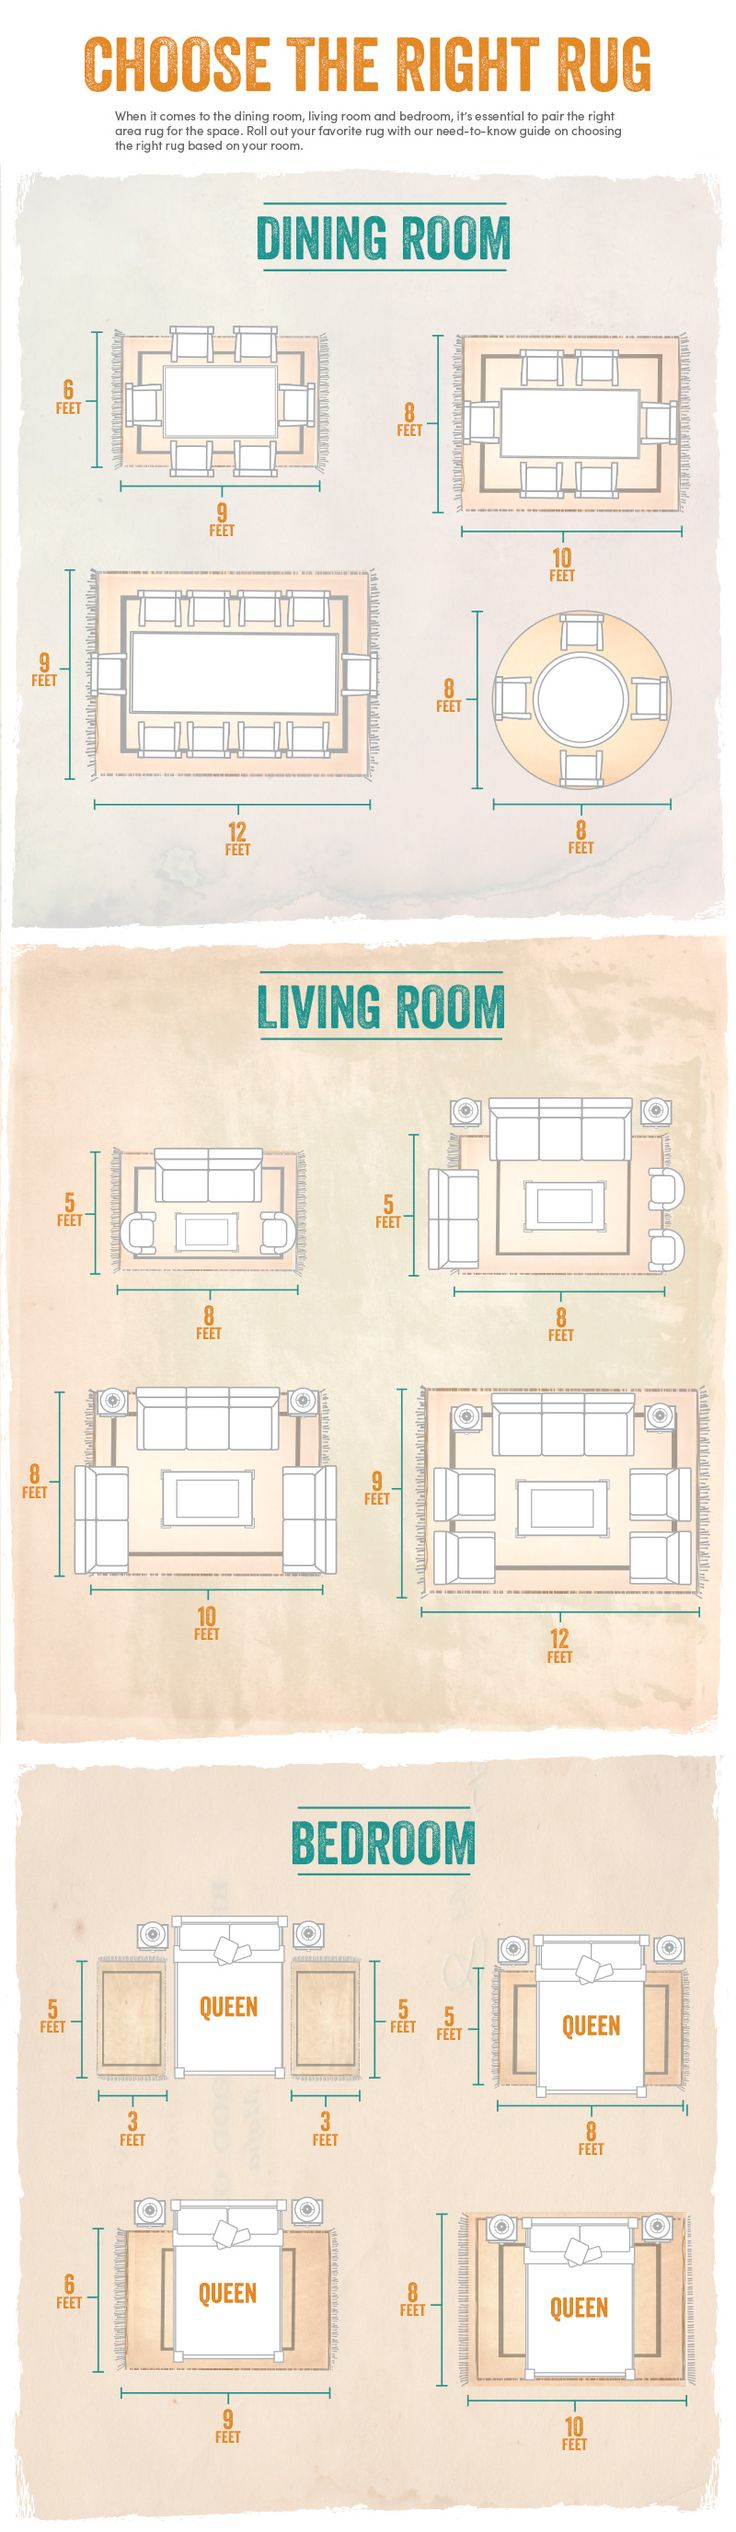 Living Room Furniture Placement Ideas best 25+ rug placement ideas only on pinterest | area rug